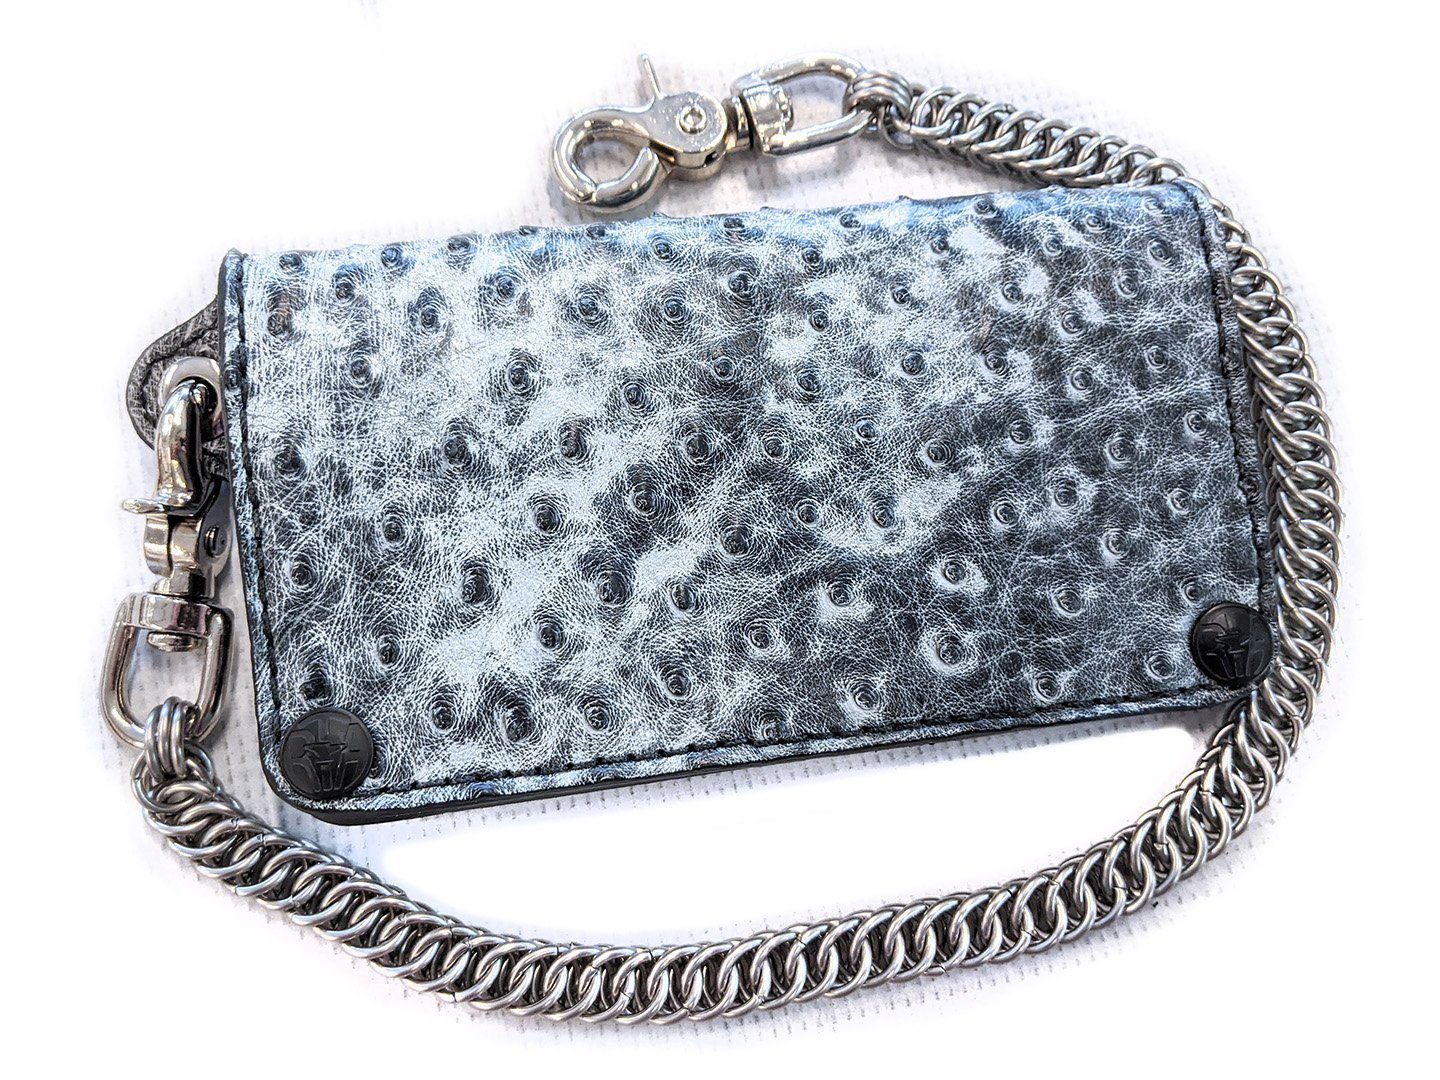 Long Biker Leather Chain Wallet - Gray Wash Ostrich